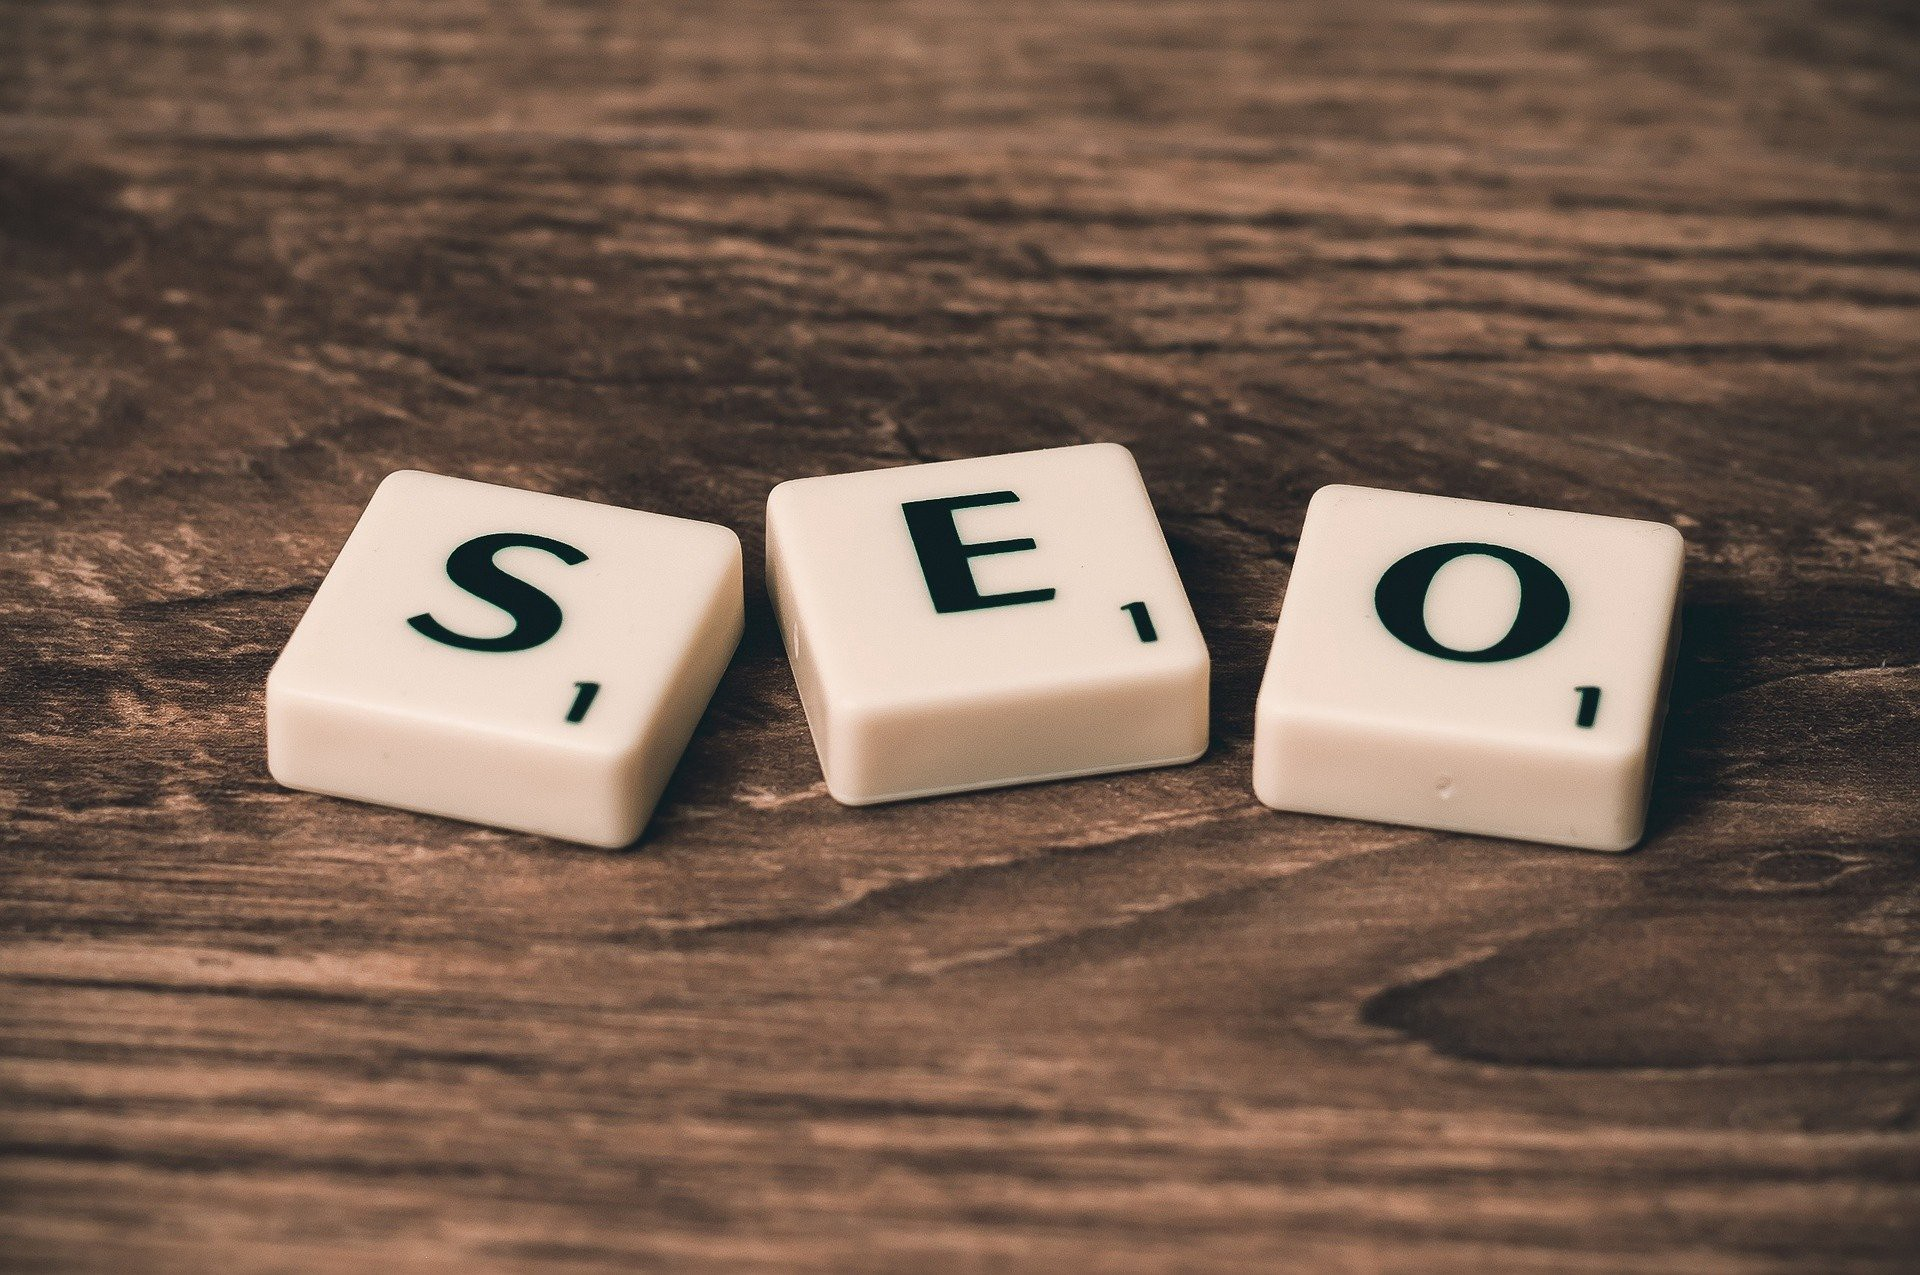 There are a lot of strategies that you can use to grow your onpage and offpage SEO. Hopefully, we've got a lot of good ideas that will help you out!